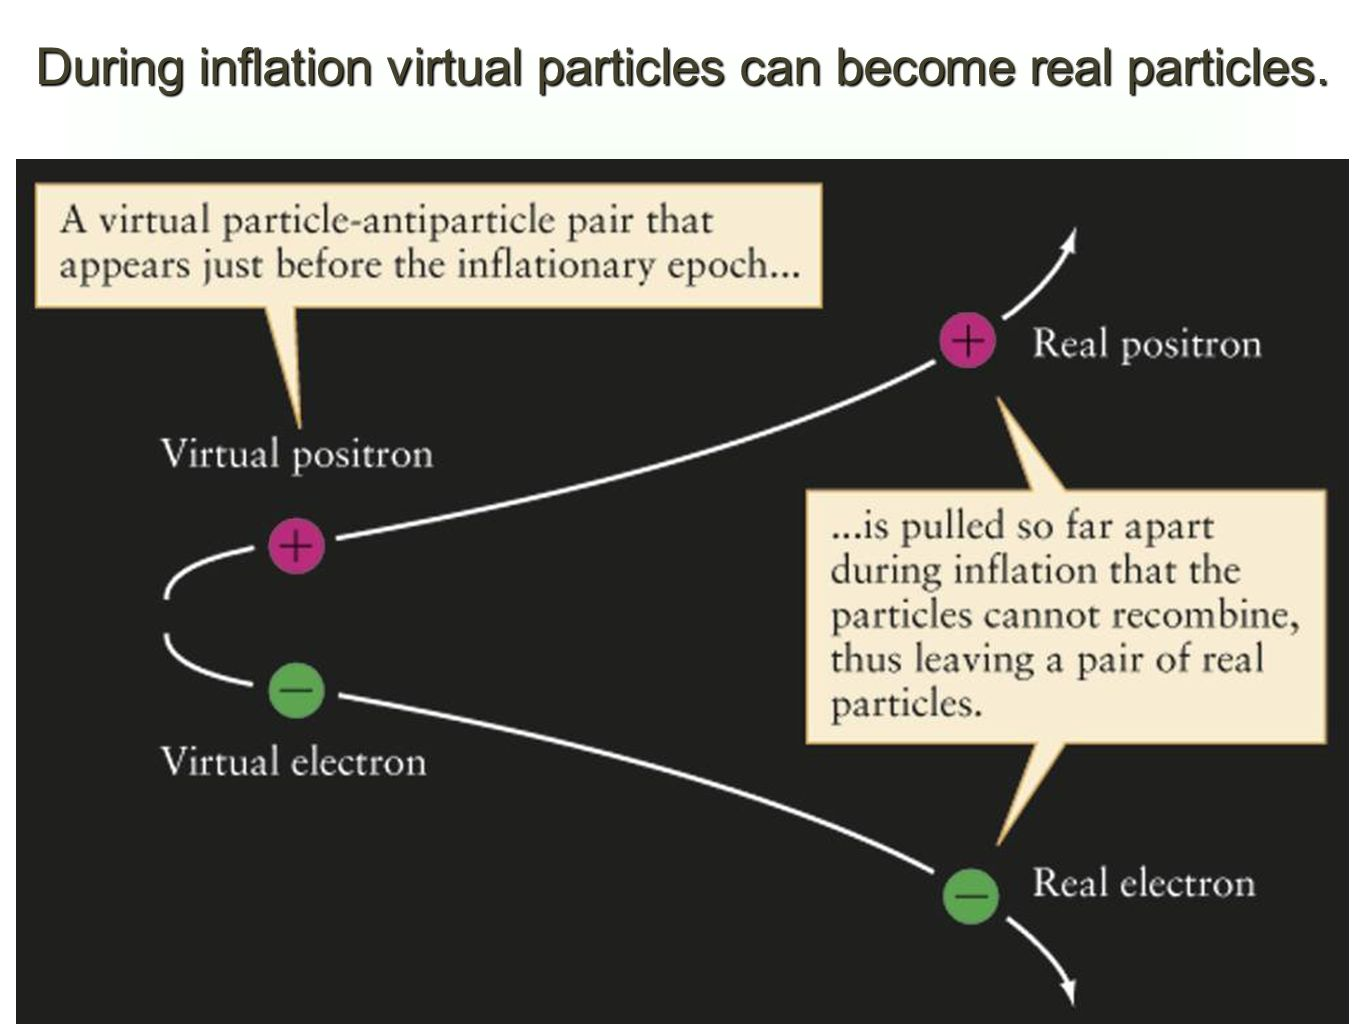 During inflation virtual particles can become real particles.